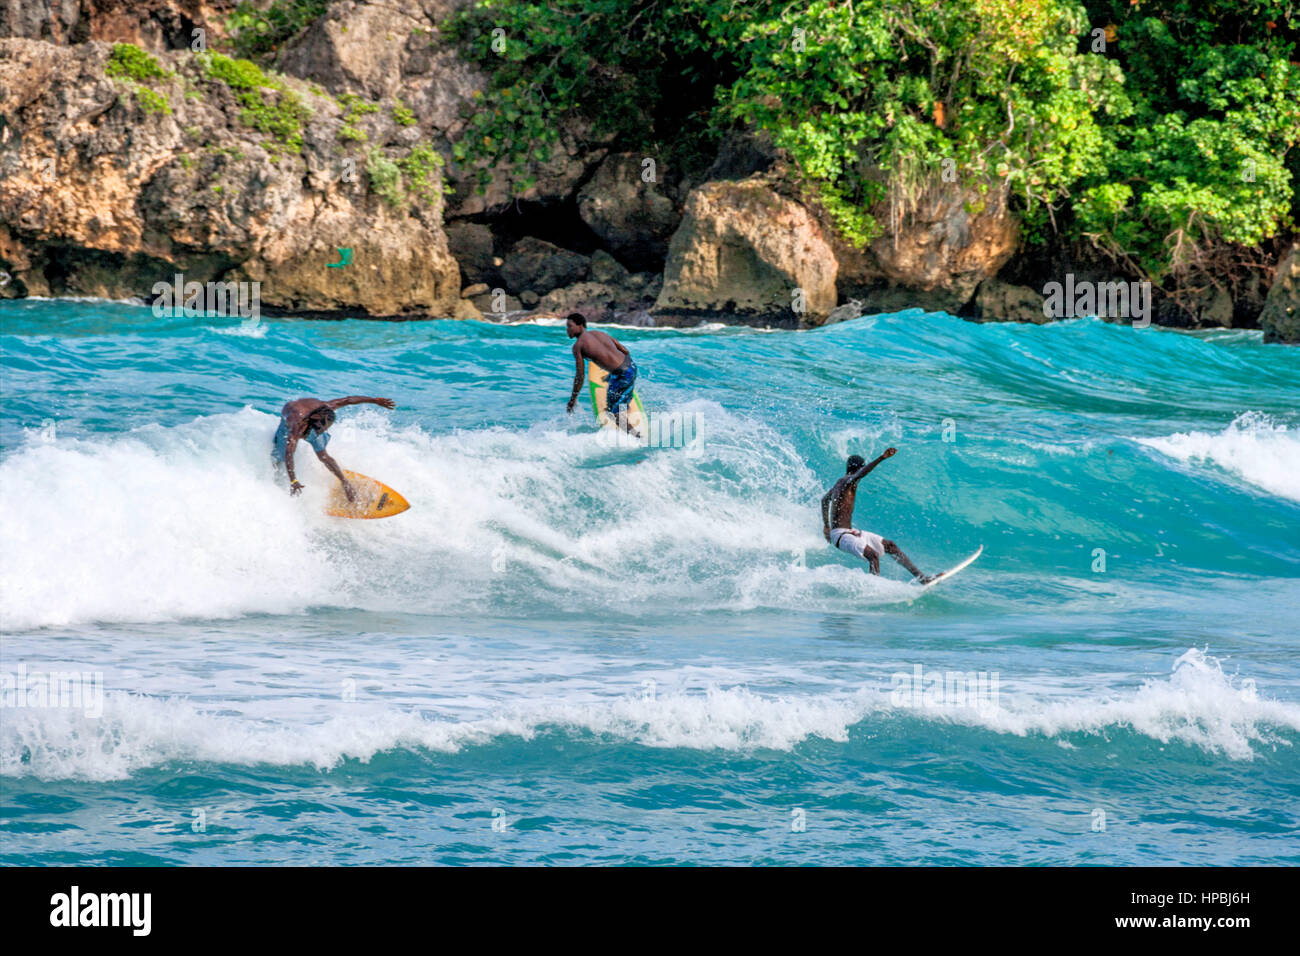 Surfer, Boston Bay, Wassersport, Wellen, Surfen, Jamaica, Jamaika Stockbild